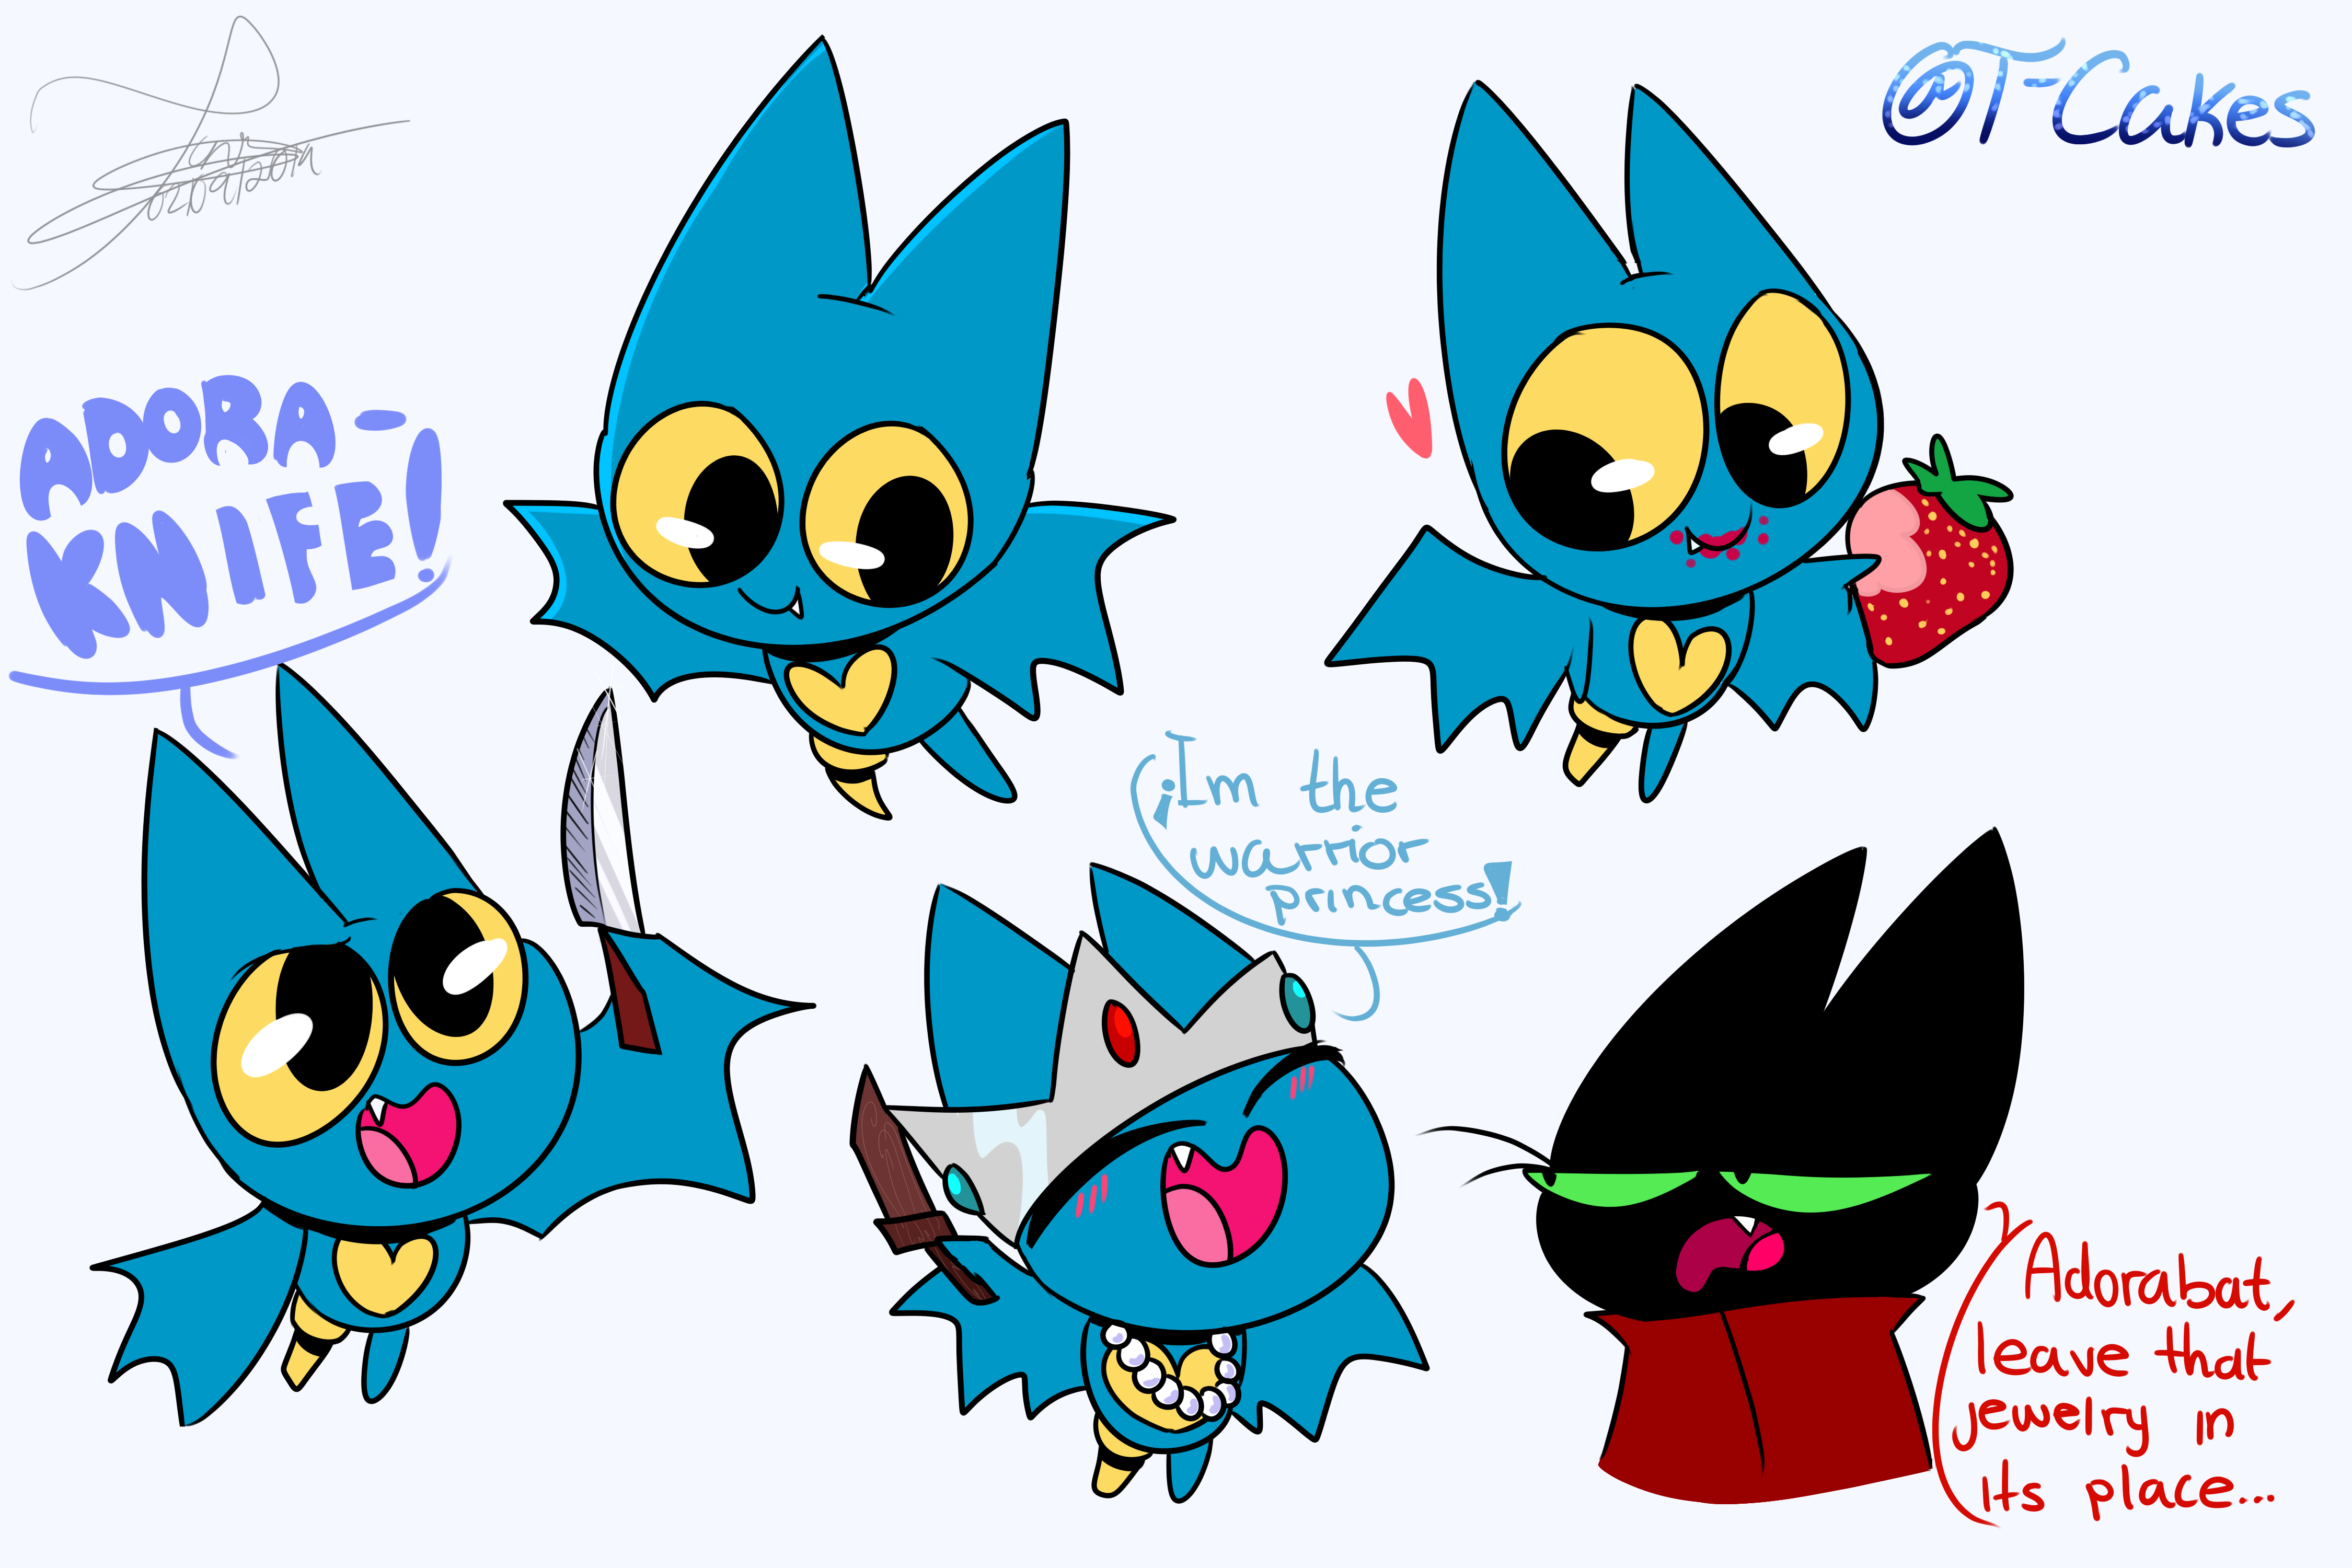 Mao Mao Heroes Of Pure Heart Adorabat Doodles By T Whiskers On Deviantart Merry christmas woooo, have a quick animated adorabat, hope everyone has a good holidays even if you dont celebrate anything!! mao mao heroes of pure heart adorabat